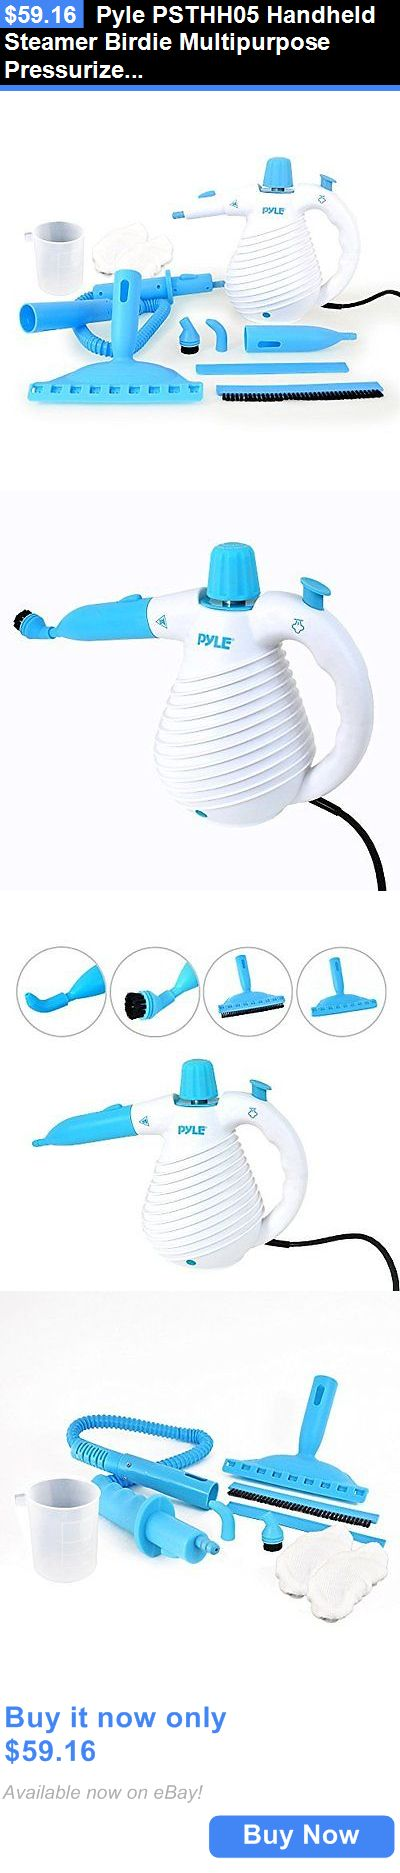 PDA Accessories: Pyle Psthh05 Handheld Steamer Birdie Multipurpose Pressurized Steam Cleaner New BUY IT NOW ONLY: $59.16